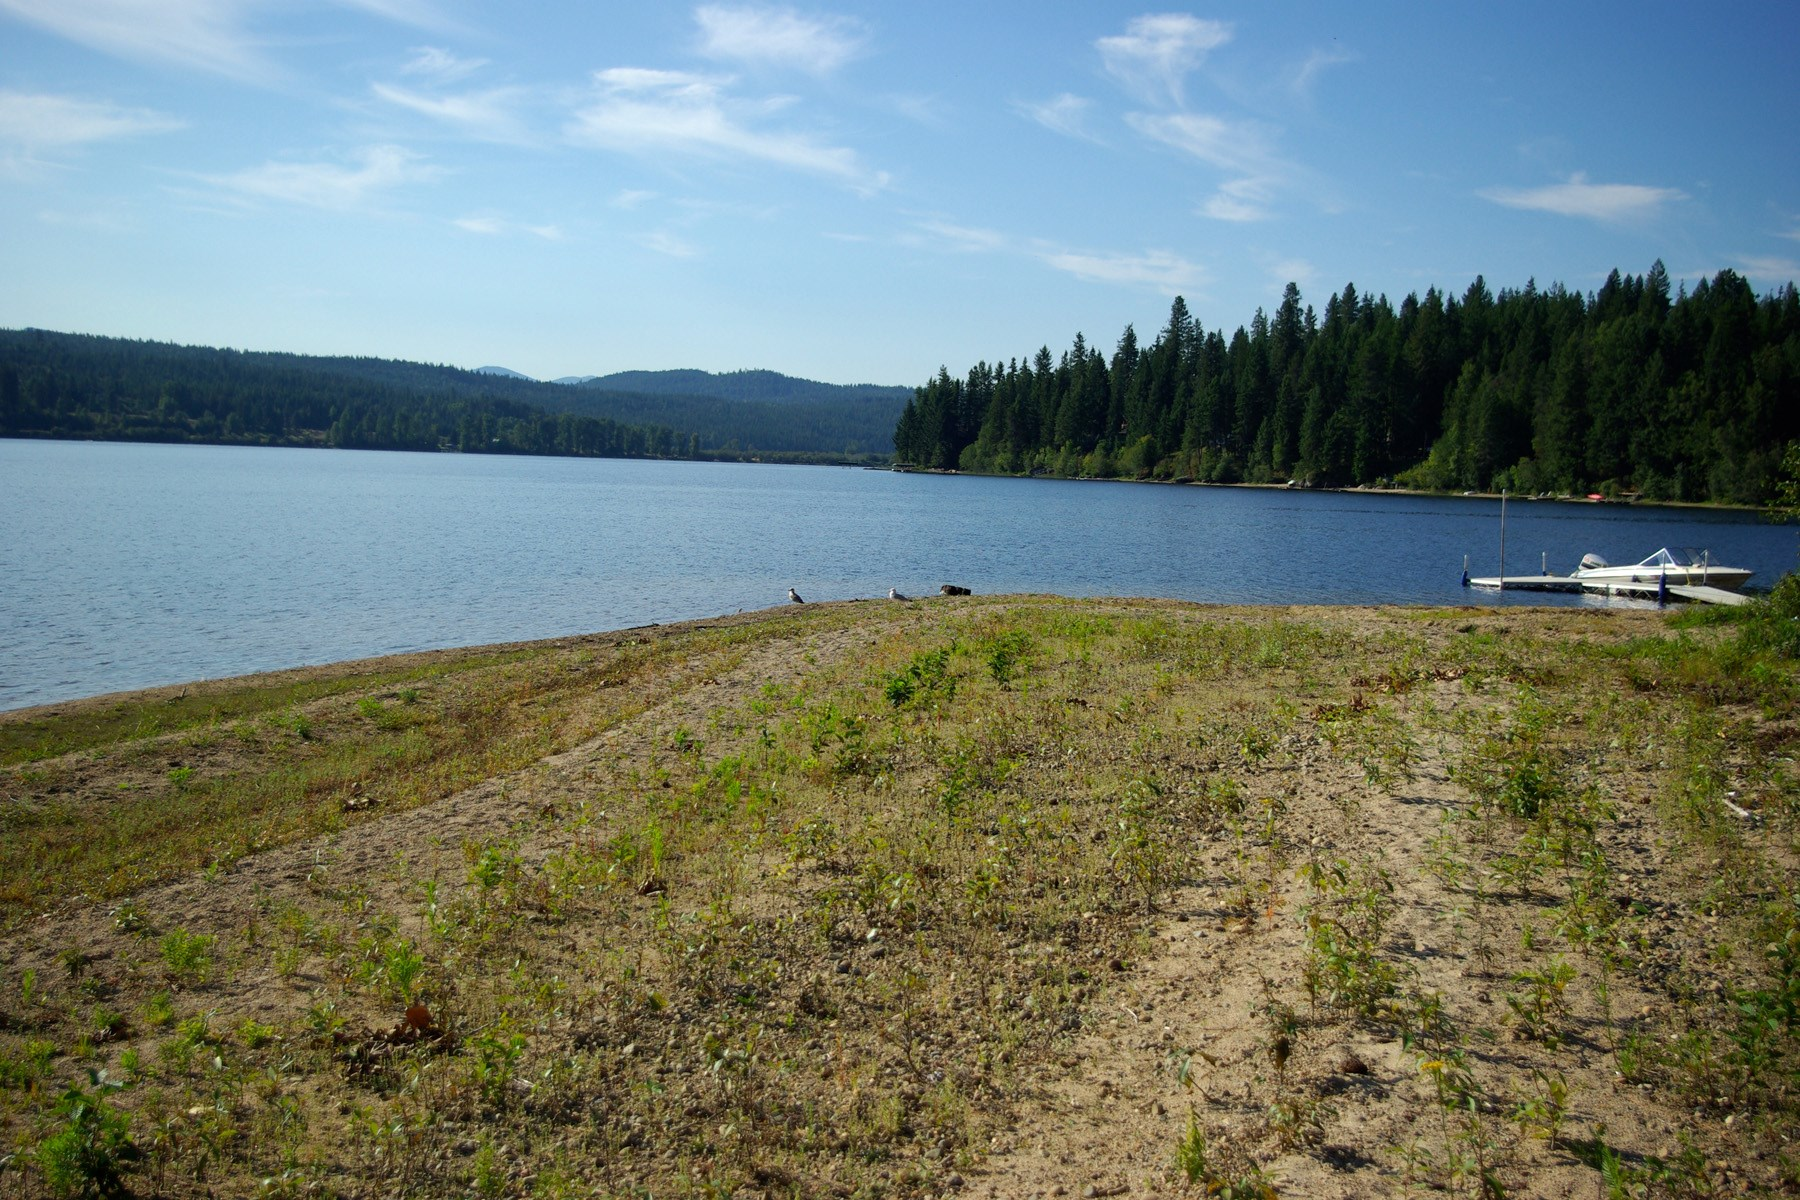 Land for Sale at Your own private sandy beach on Lake Cocolalla, Lot 9 Lot 9 Sandy Beach Ln, Cocolalla, Idaho, 83813 United States